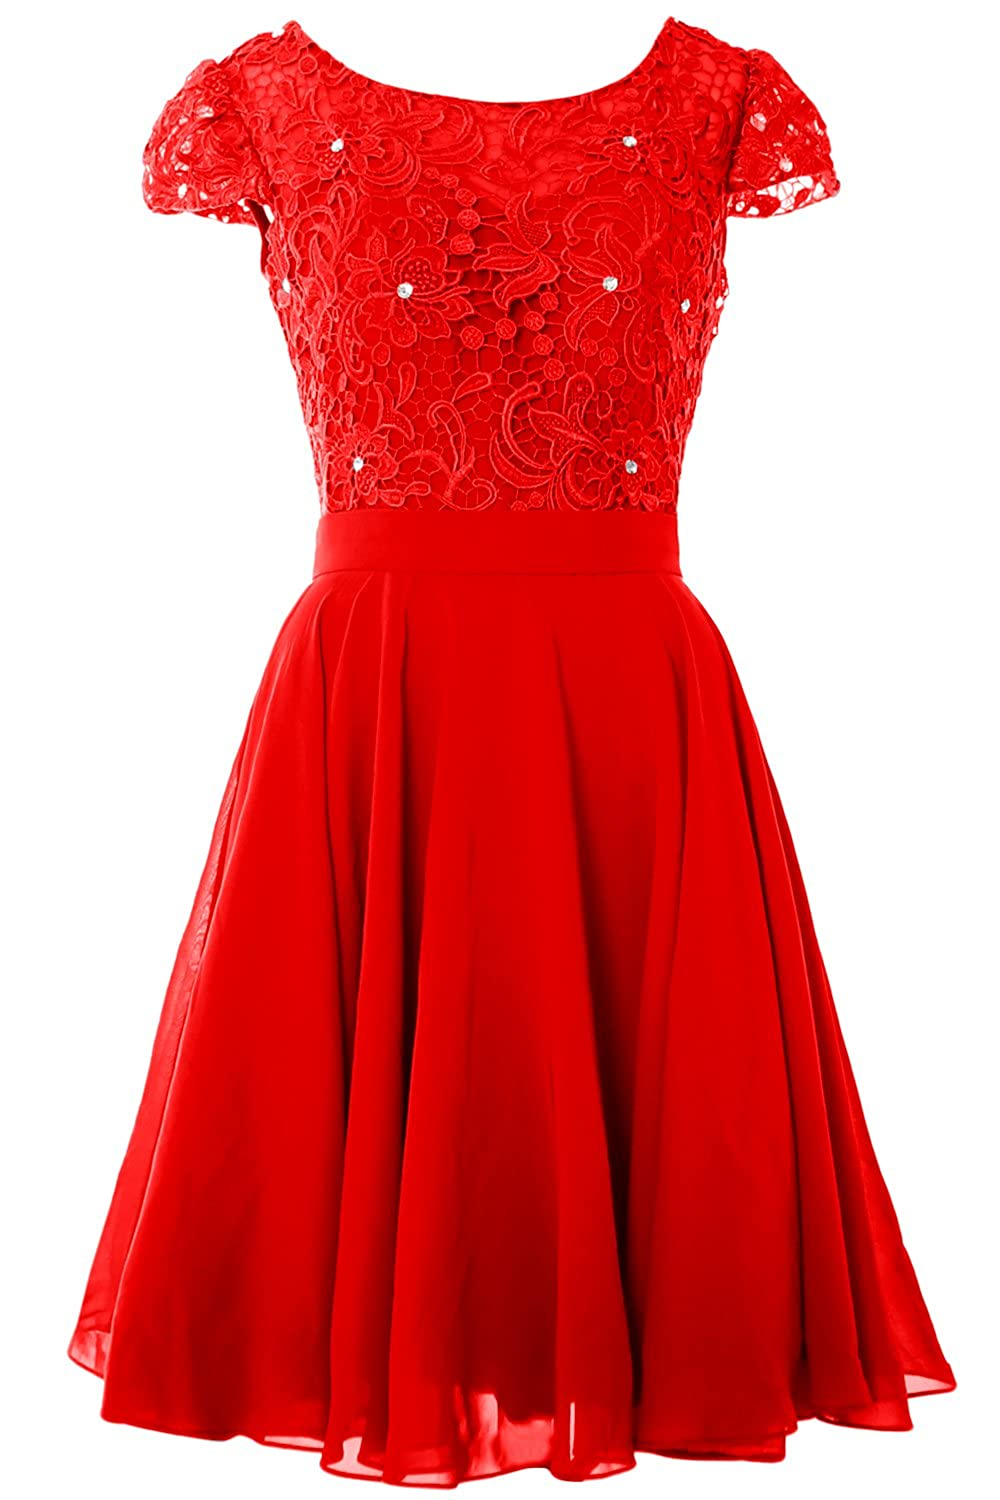 MACloth Short Wedding Guest Dresses Cap Sleeves LaceFormal Party Evening Gown